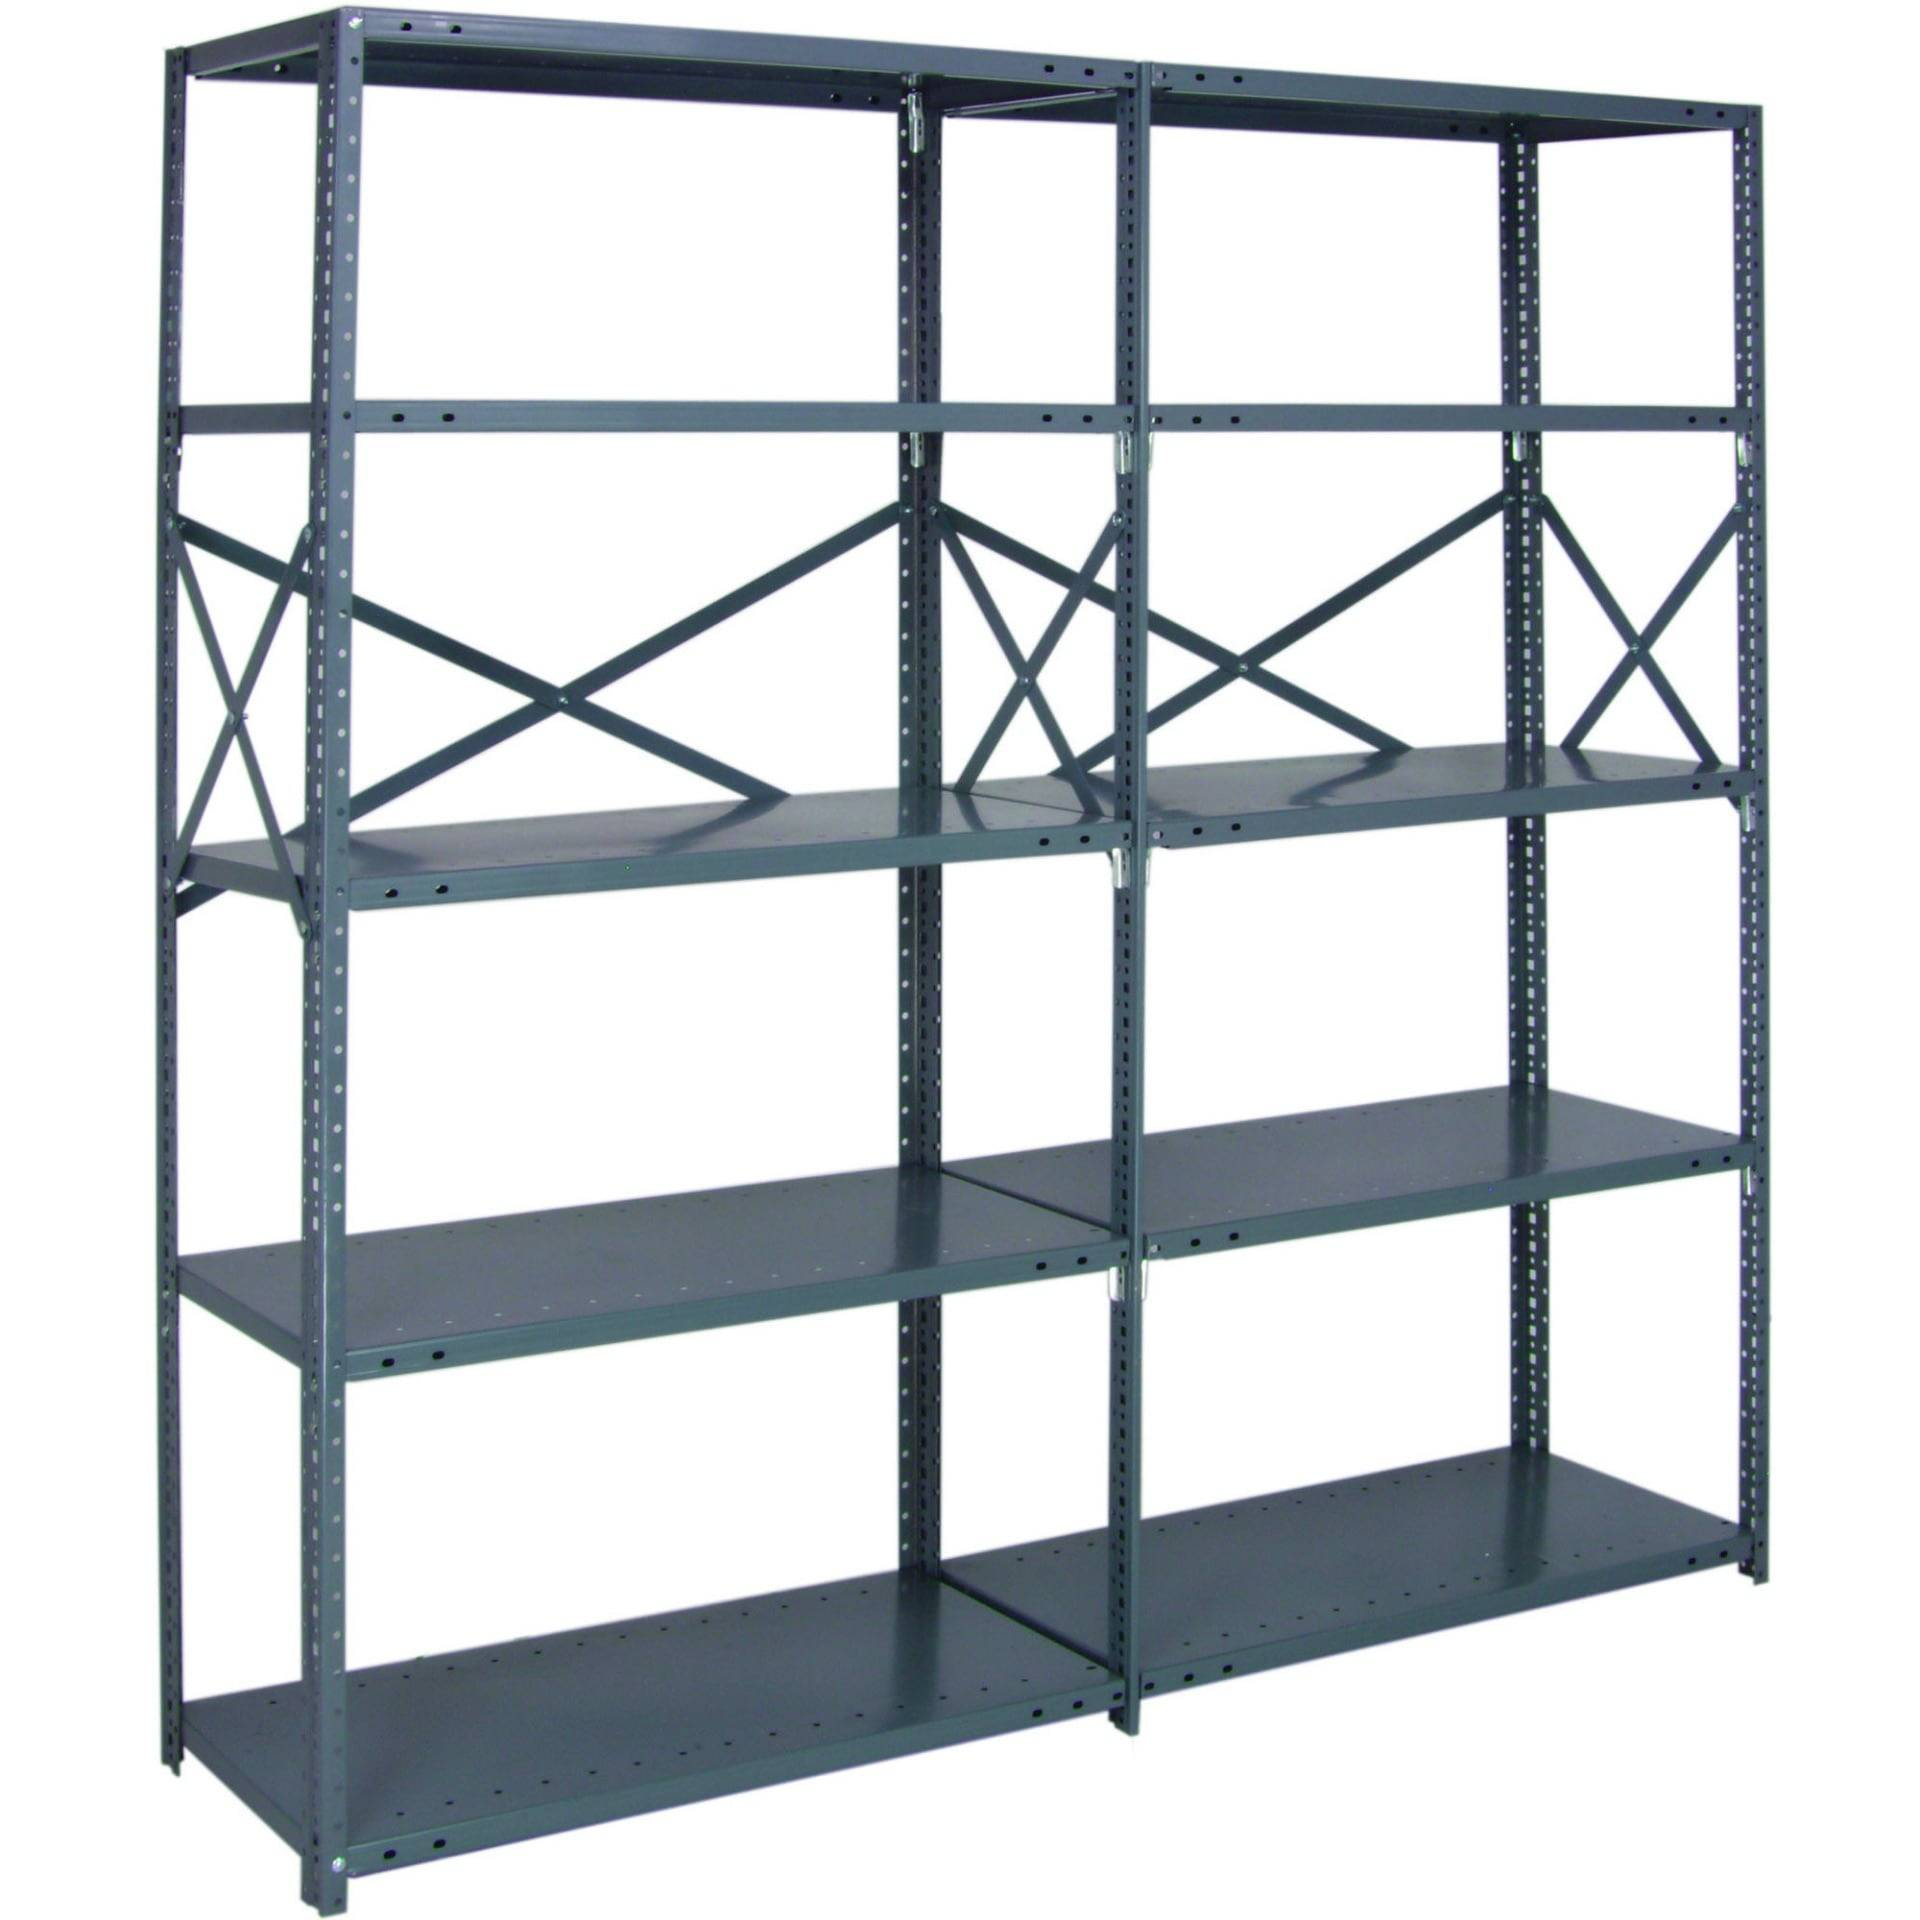 display find quotations steel large get line at tier on storage shopping cheap utility shoe guides tower rack closet organizer deals adorox shelf